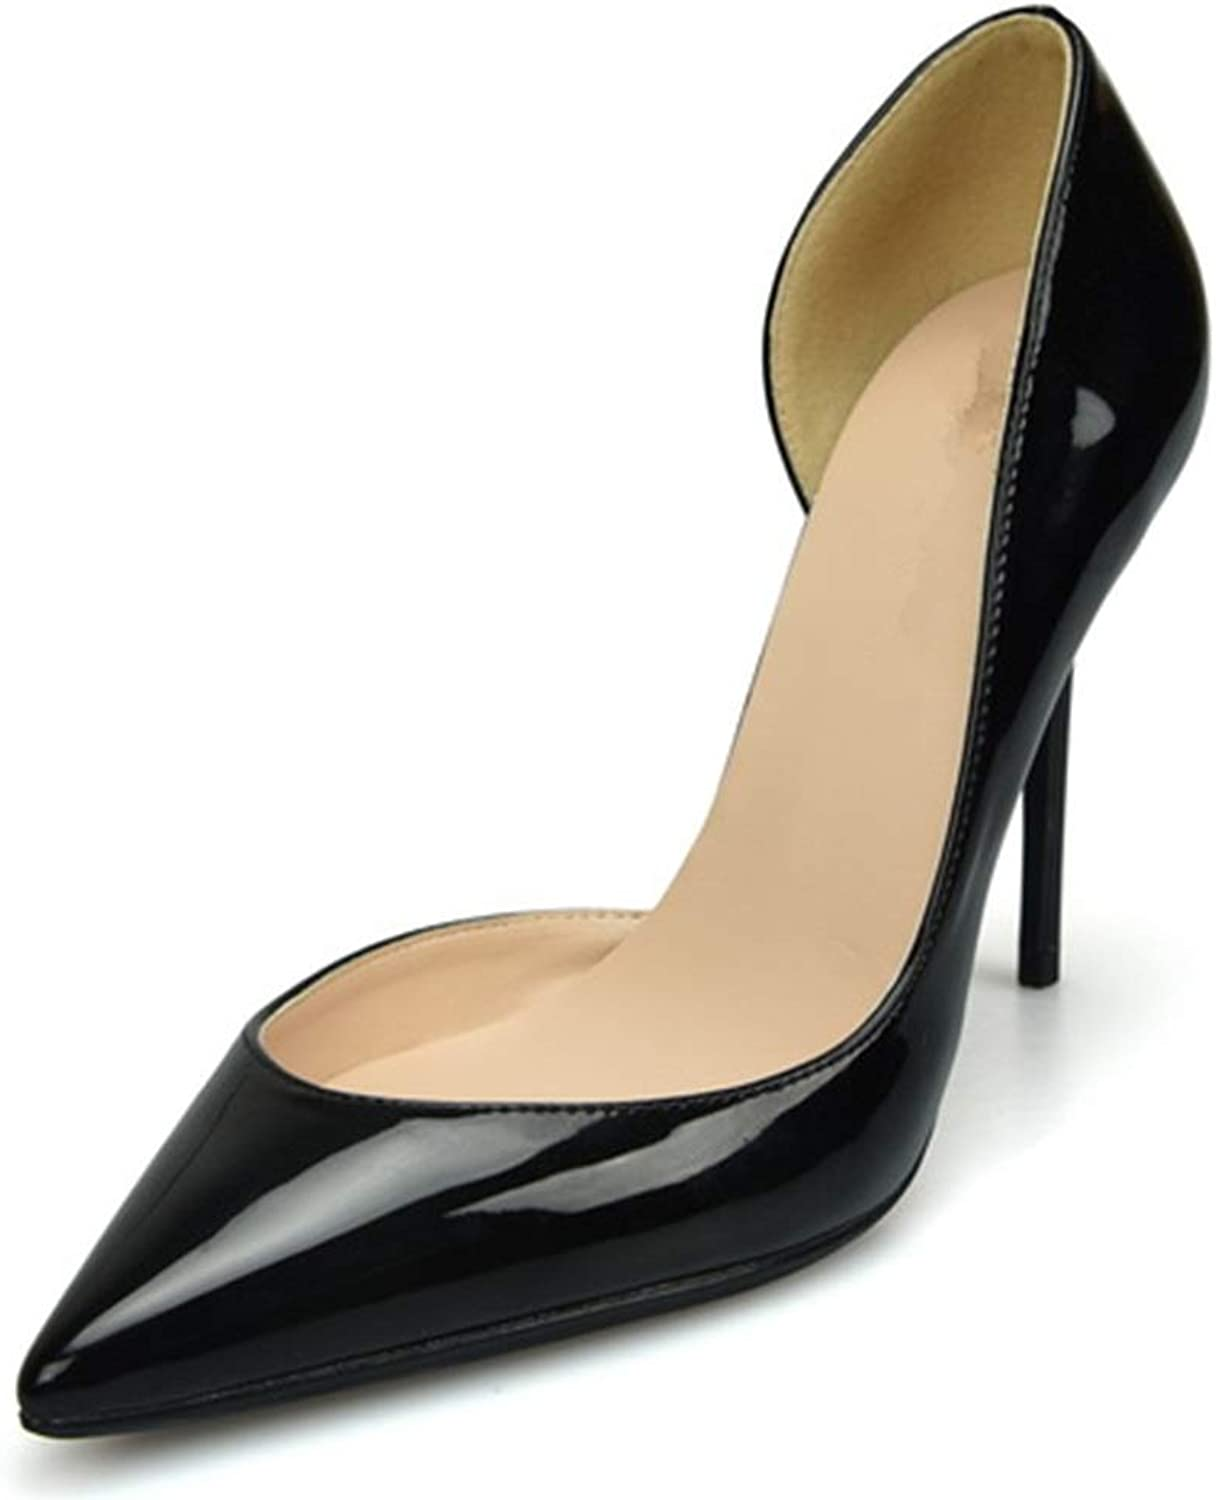 shoes Fashion Dorsay Pumps for Women High Stiletto Heels Side Cut Sexy Pointed shoes for Ladies  Pointed, Classic Slip On Dress Pumps Comfortable (color   Black 8 cm Heel, Size   4.5 M US)